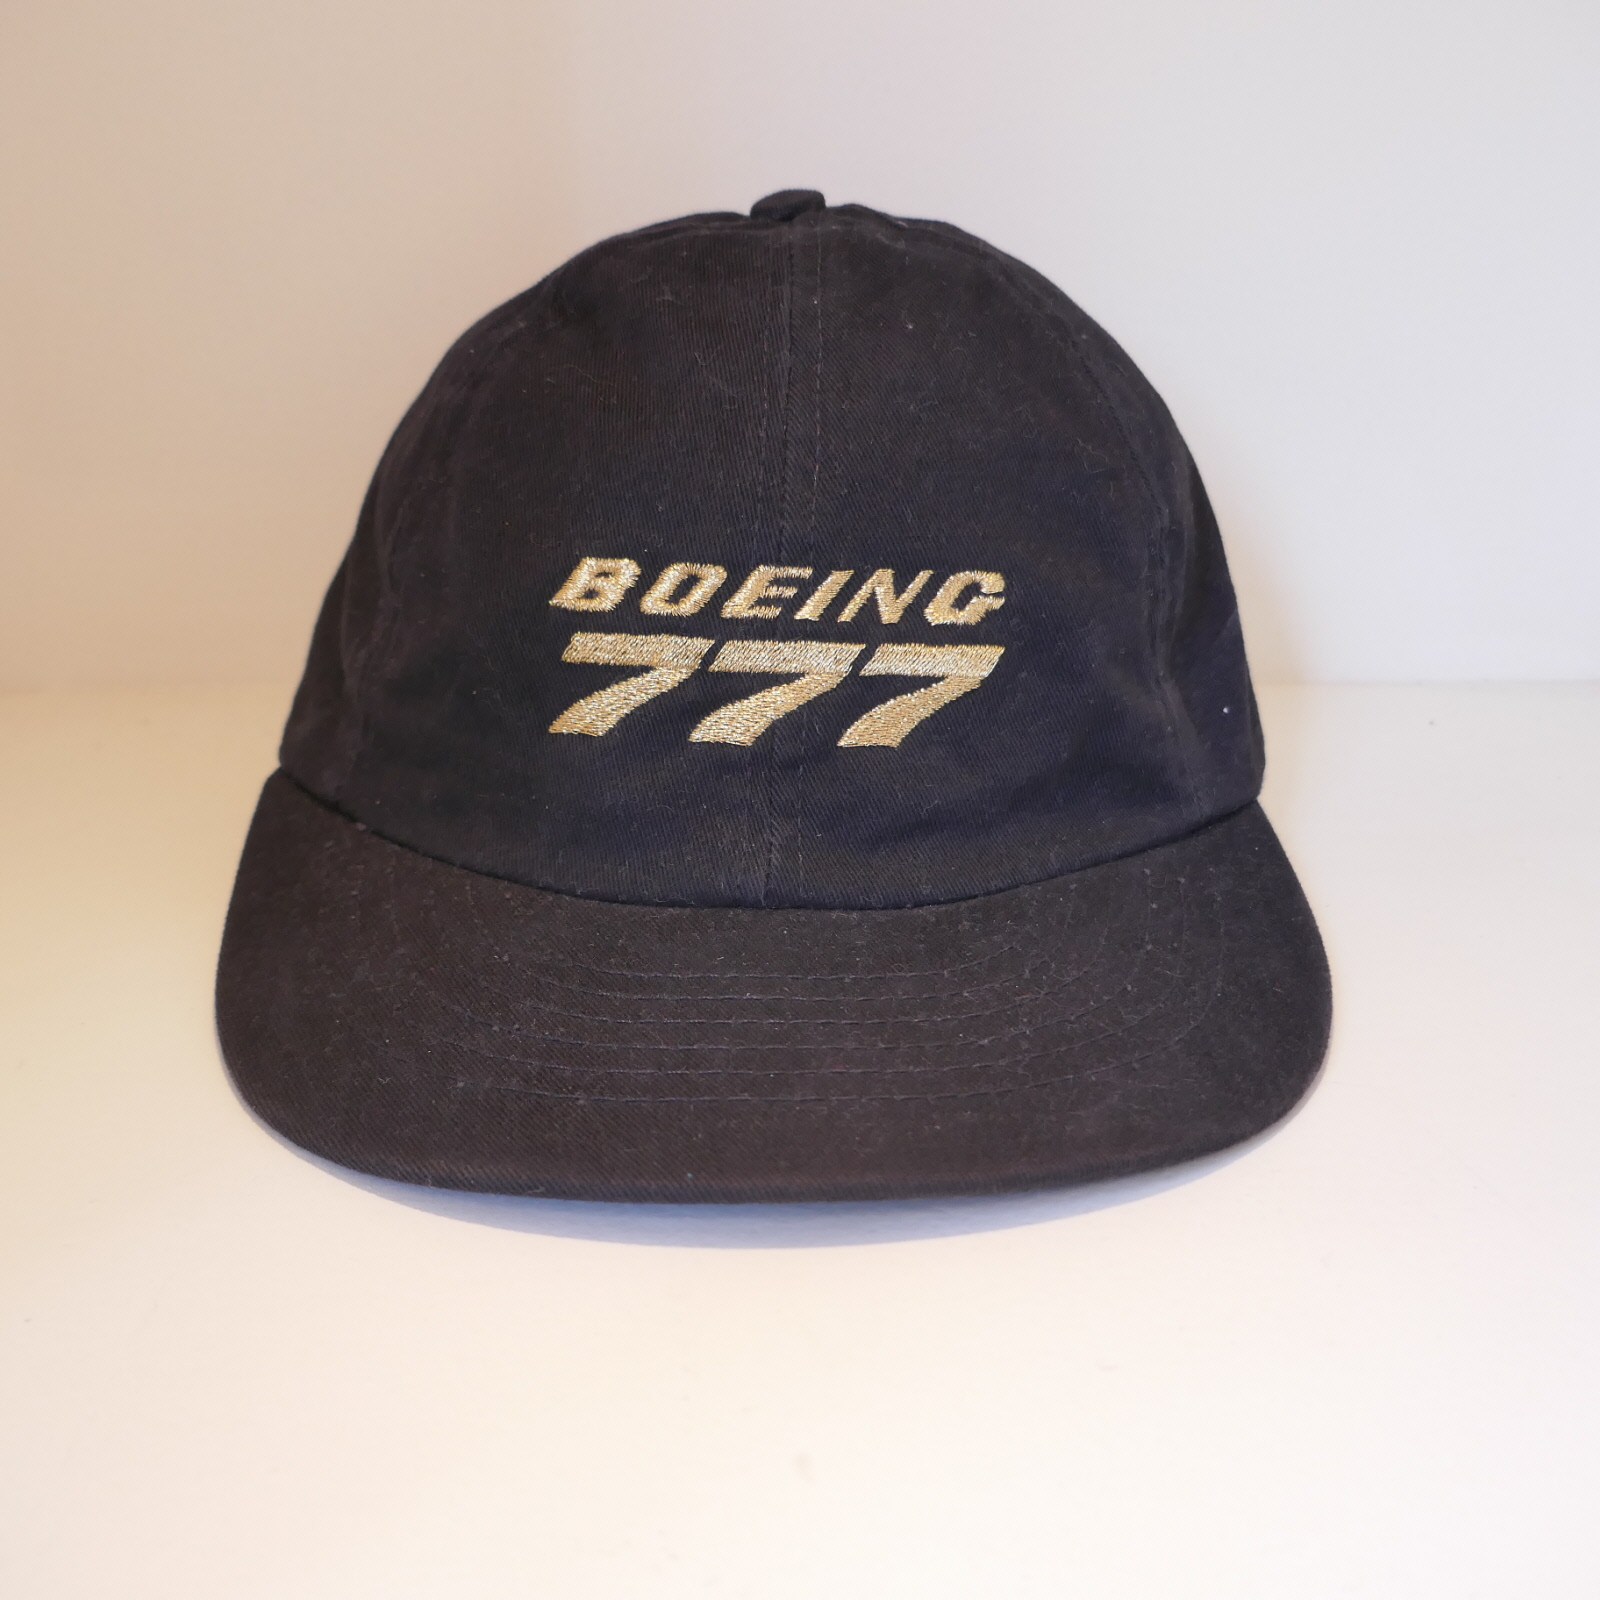 USED BOEING777 CAP BLACK